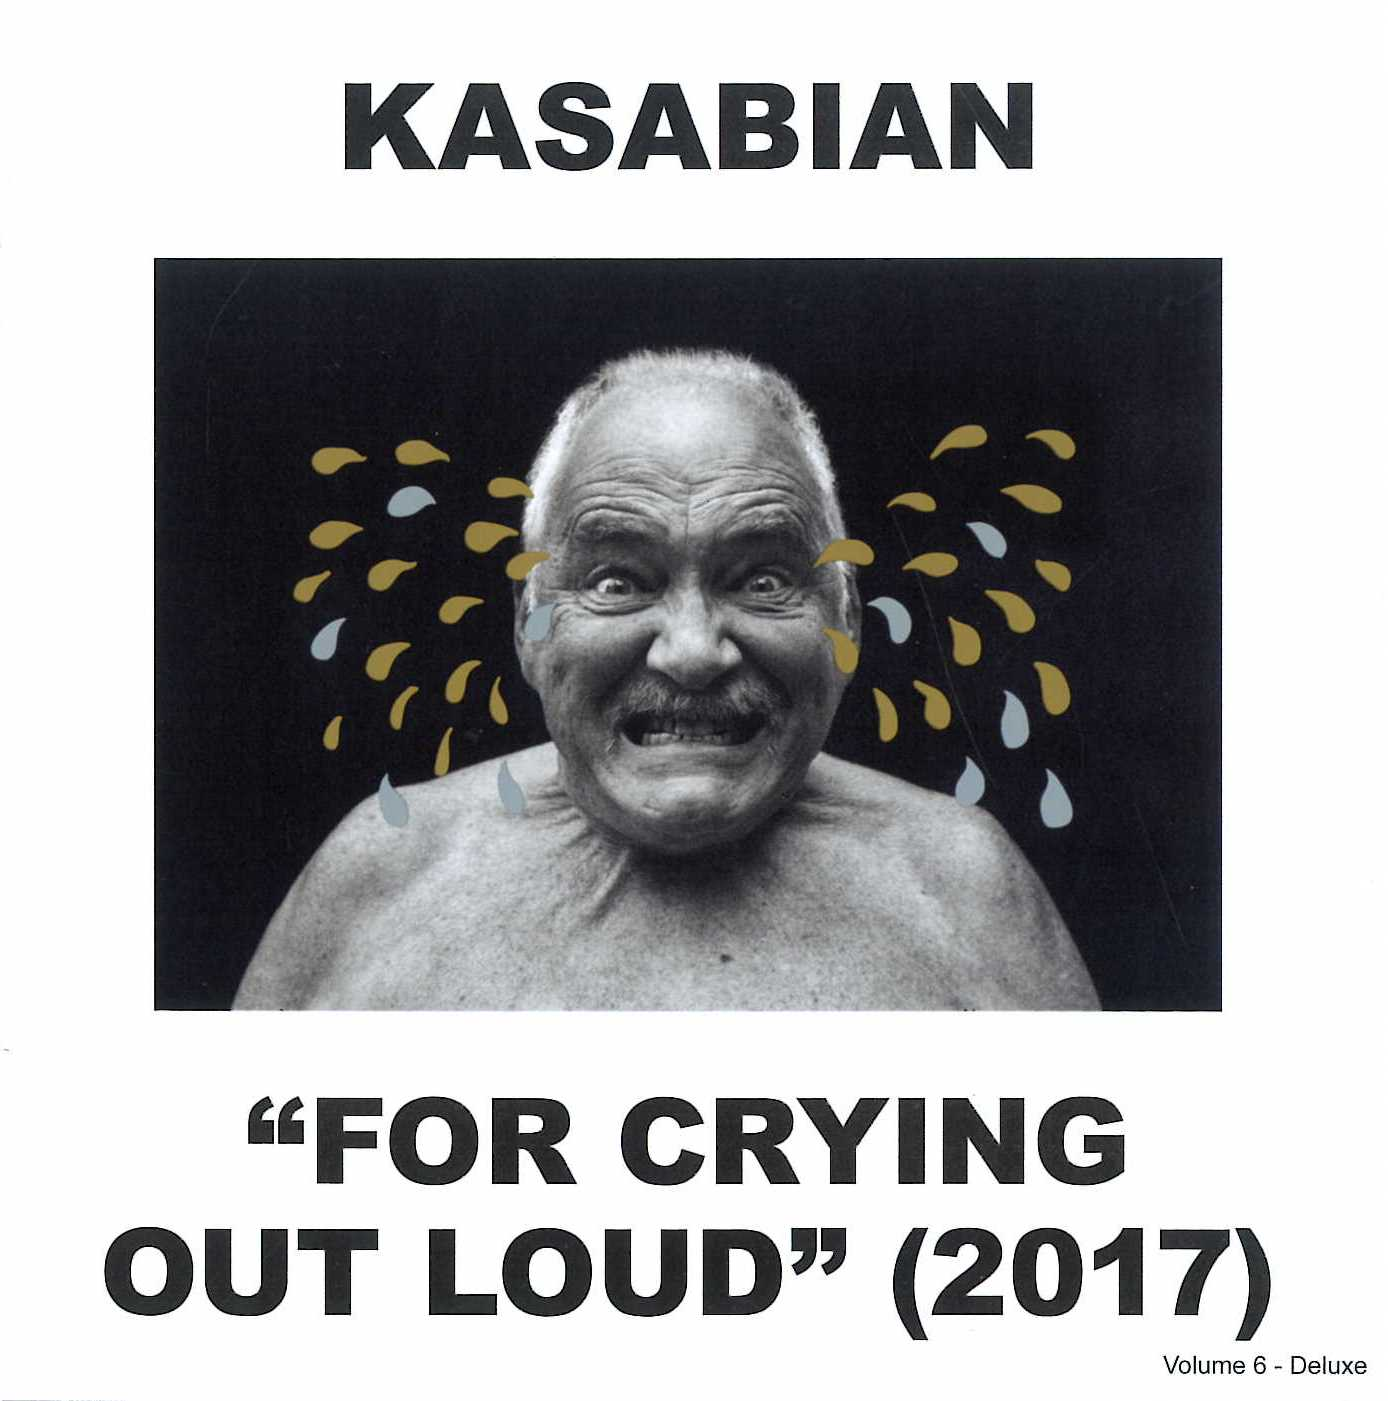 For crying out loud! (Deluxe edition)